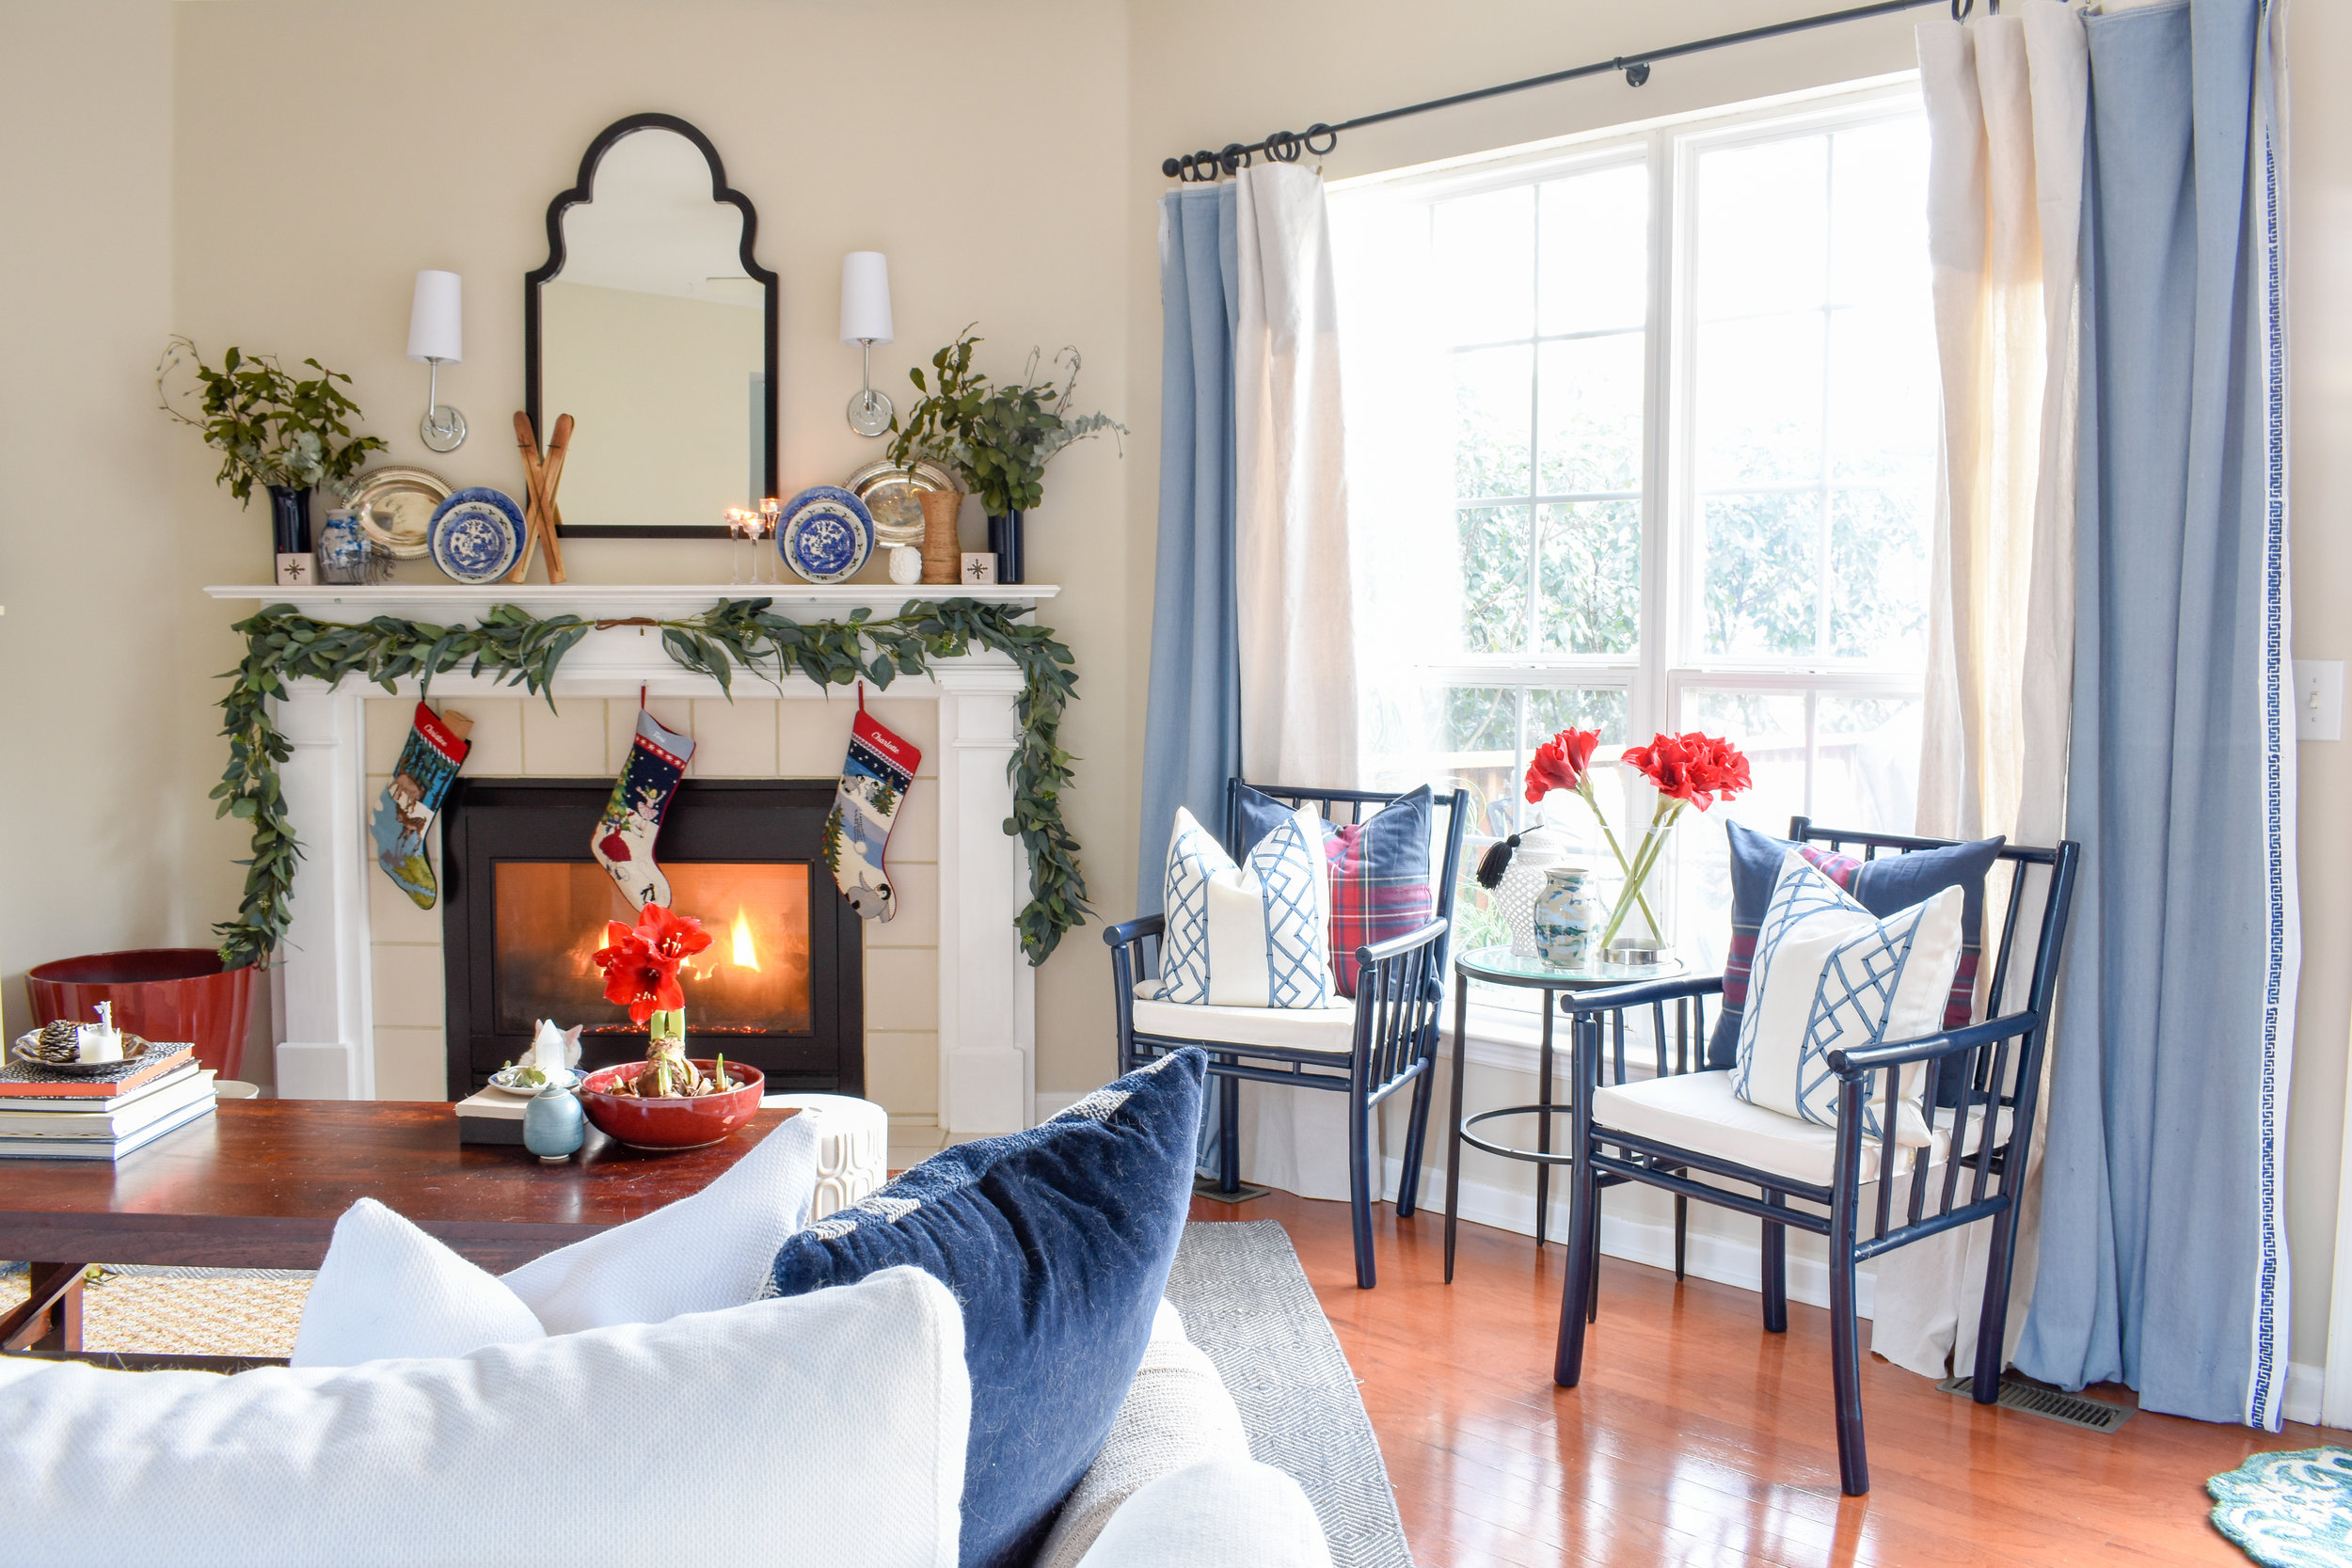 Updating my blue and white living room for Christmas/Winter. I've added seasonal touches to enhance and not detract from my chinoiserie and blue willow collection.